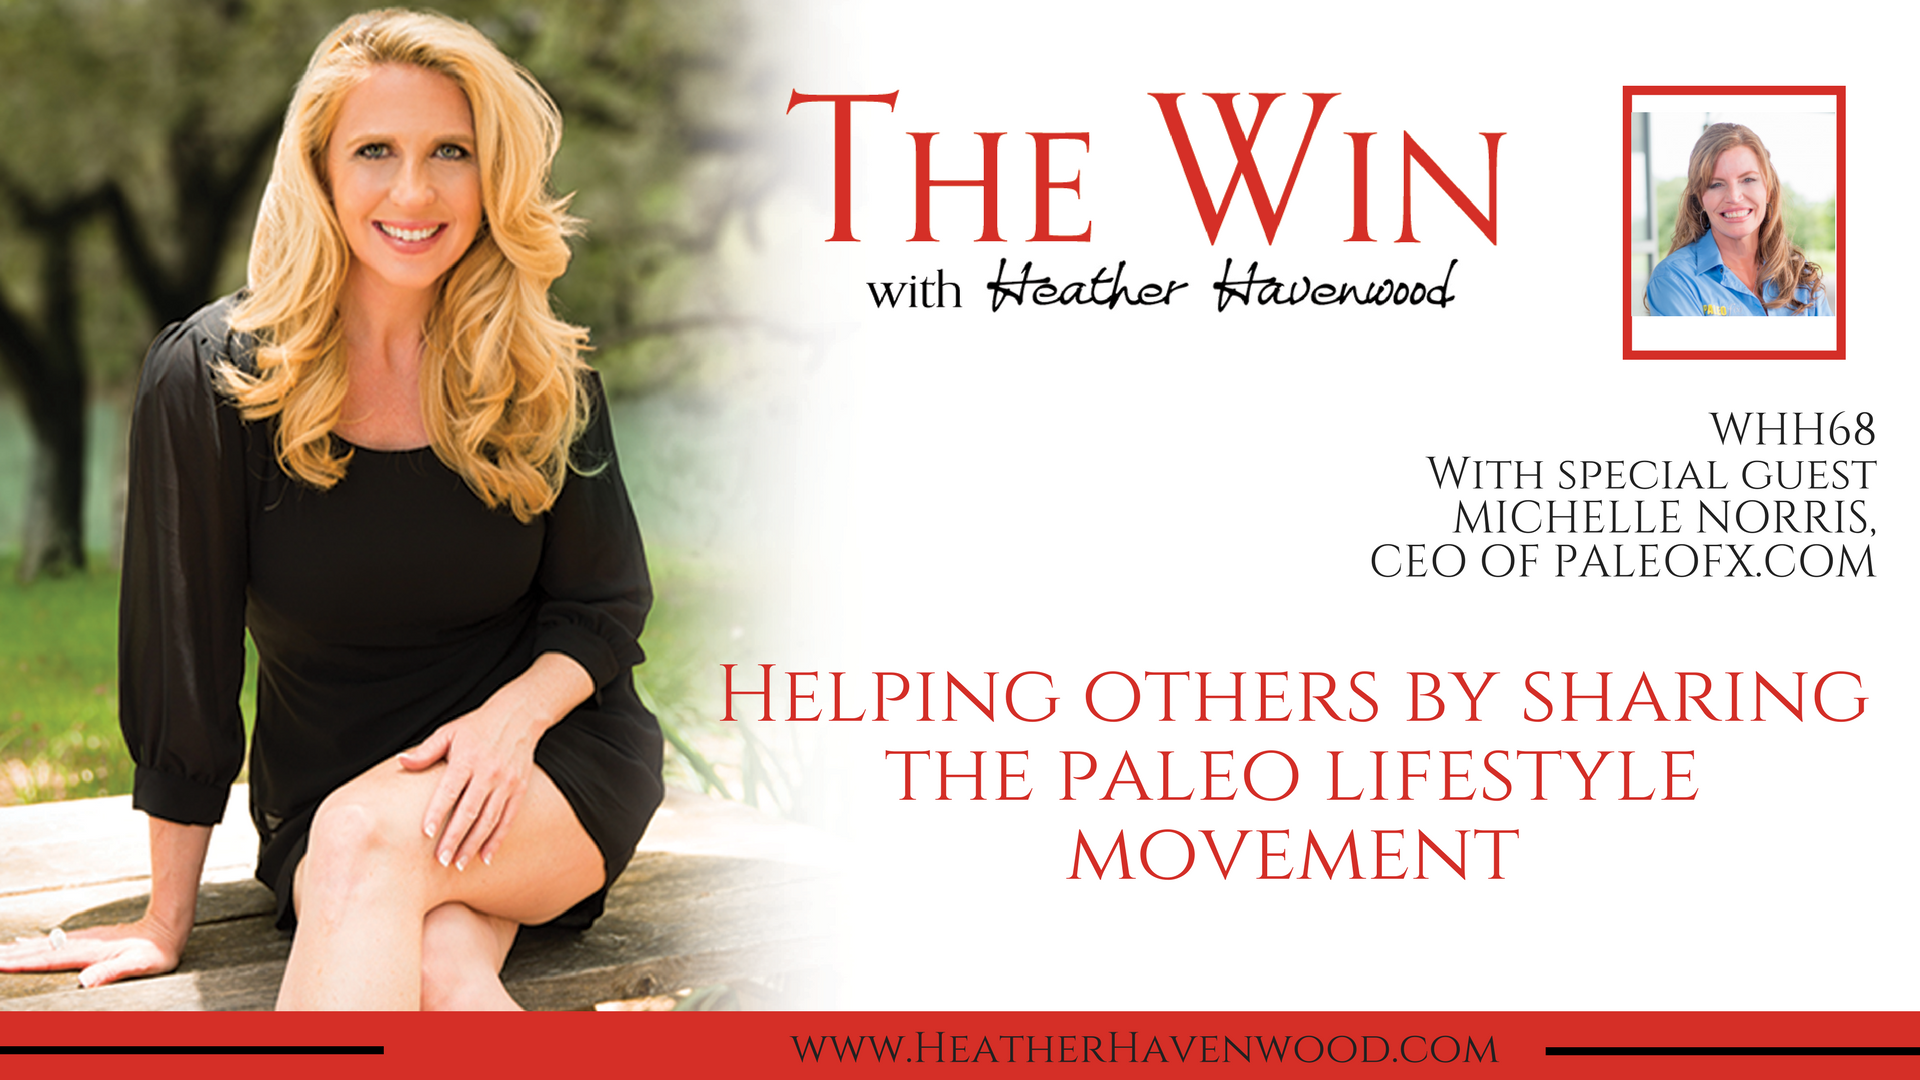 WHH68: Discover a true passion of helping others, through sharing what a Paleo Lifestyle Really is with Michelle Norris